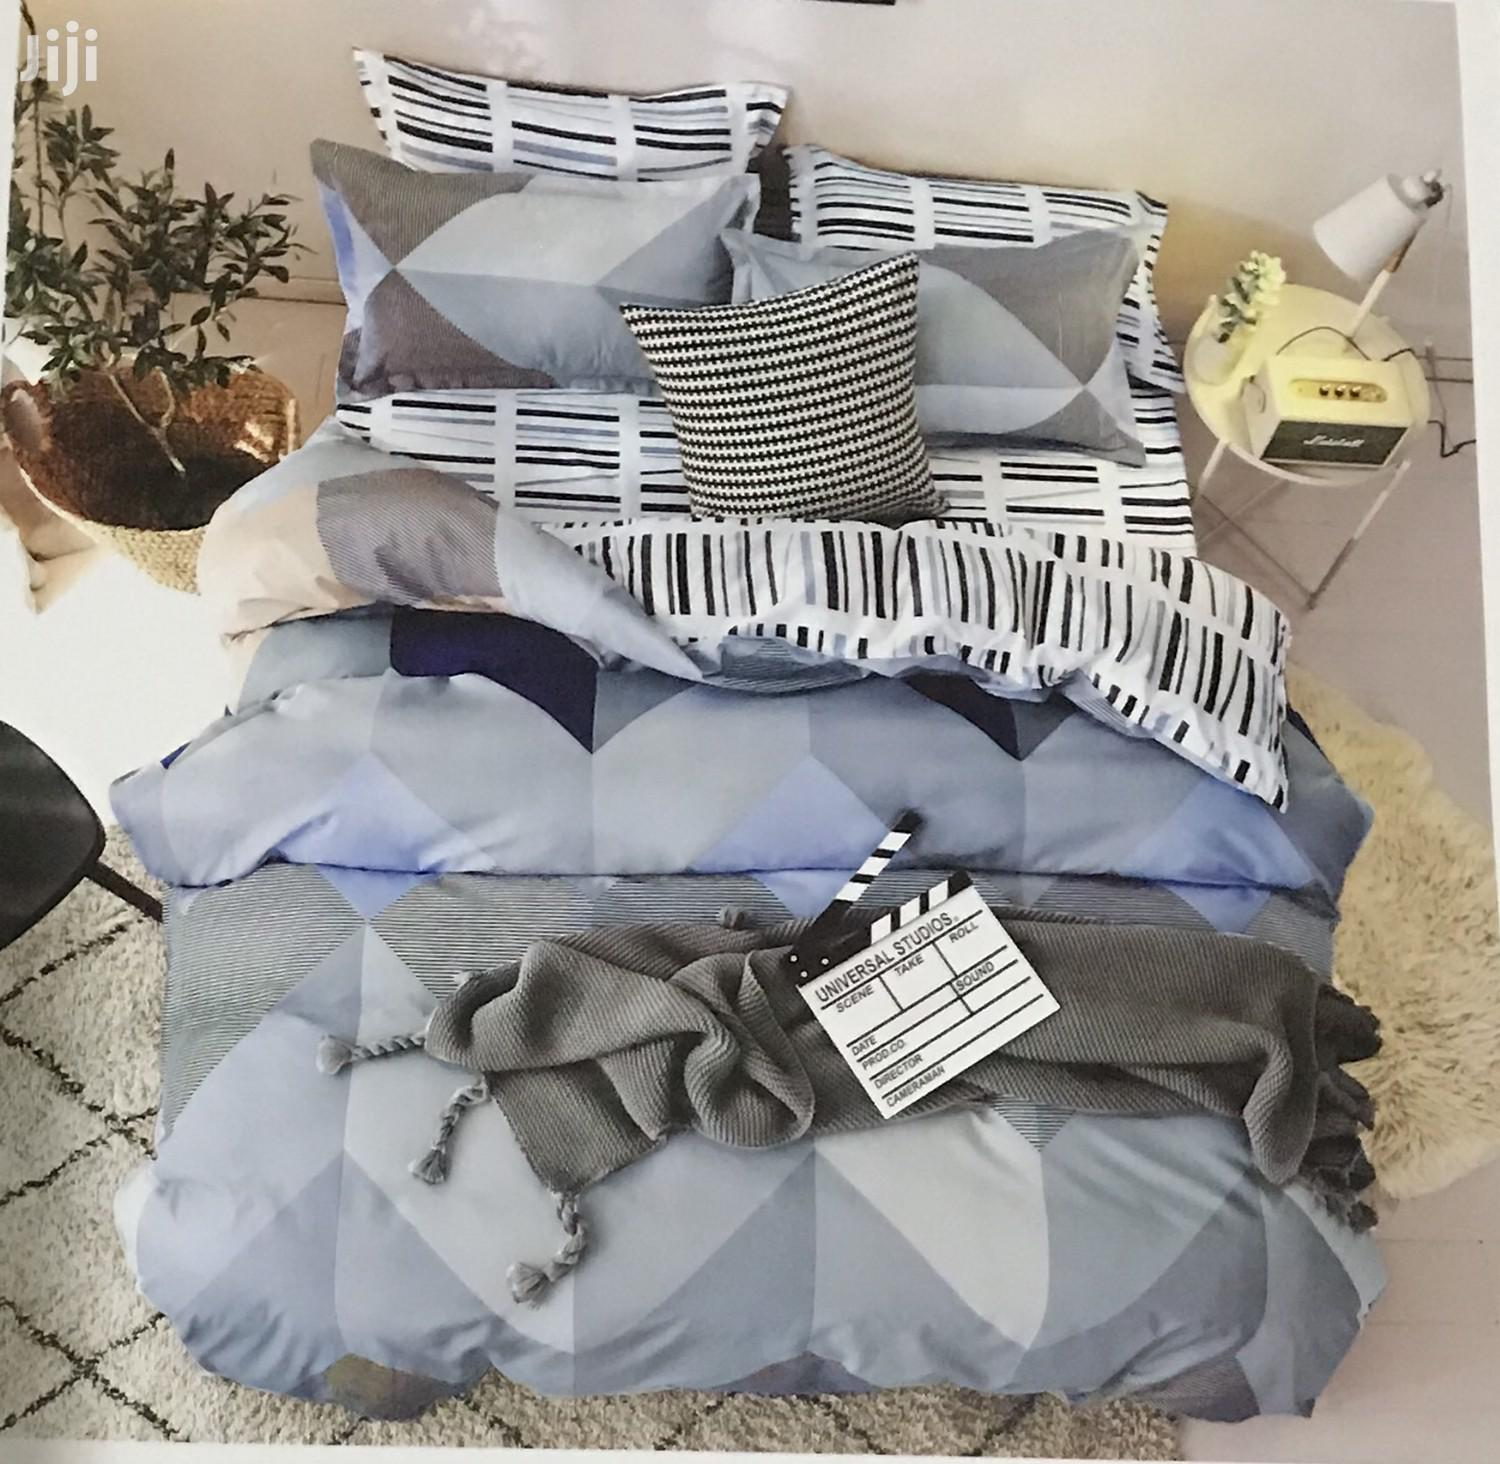 5*6 Duvets and Bedsheets | Home Accessories for sale in Kampala, Central Region, Uganda